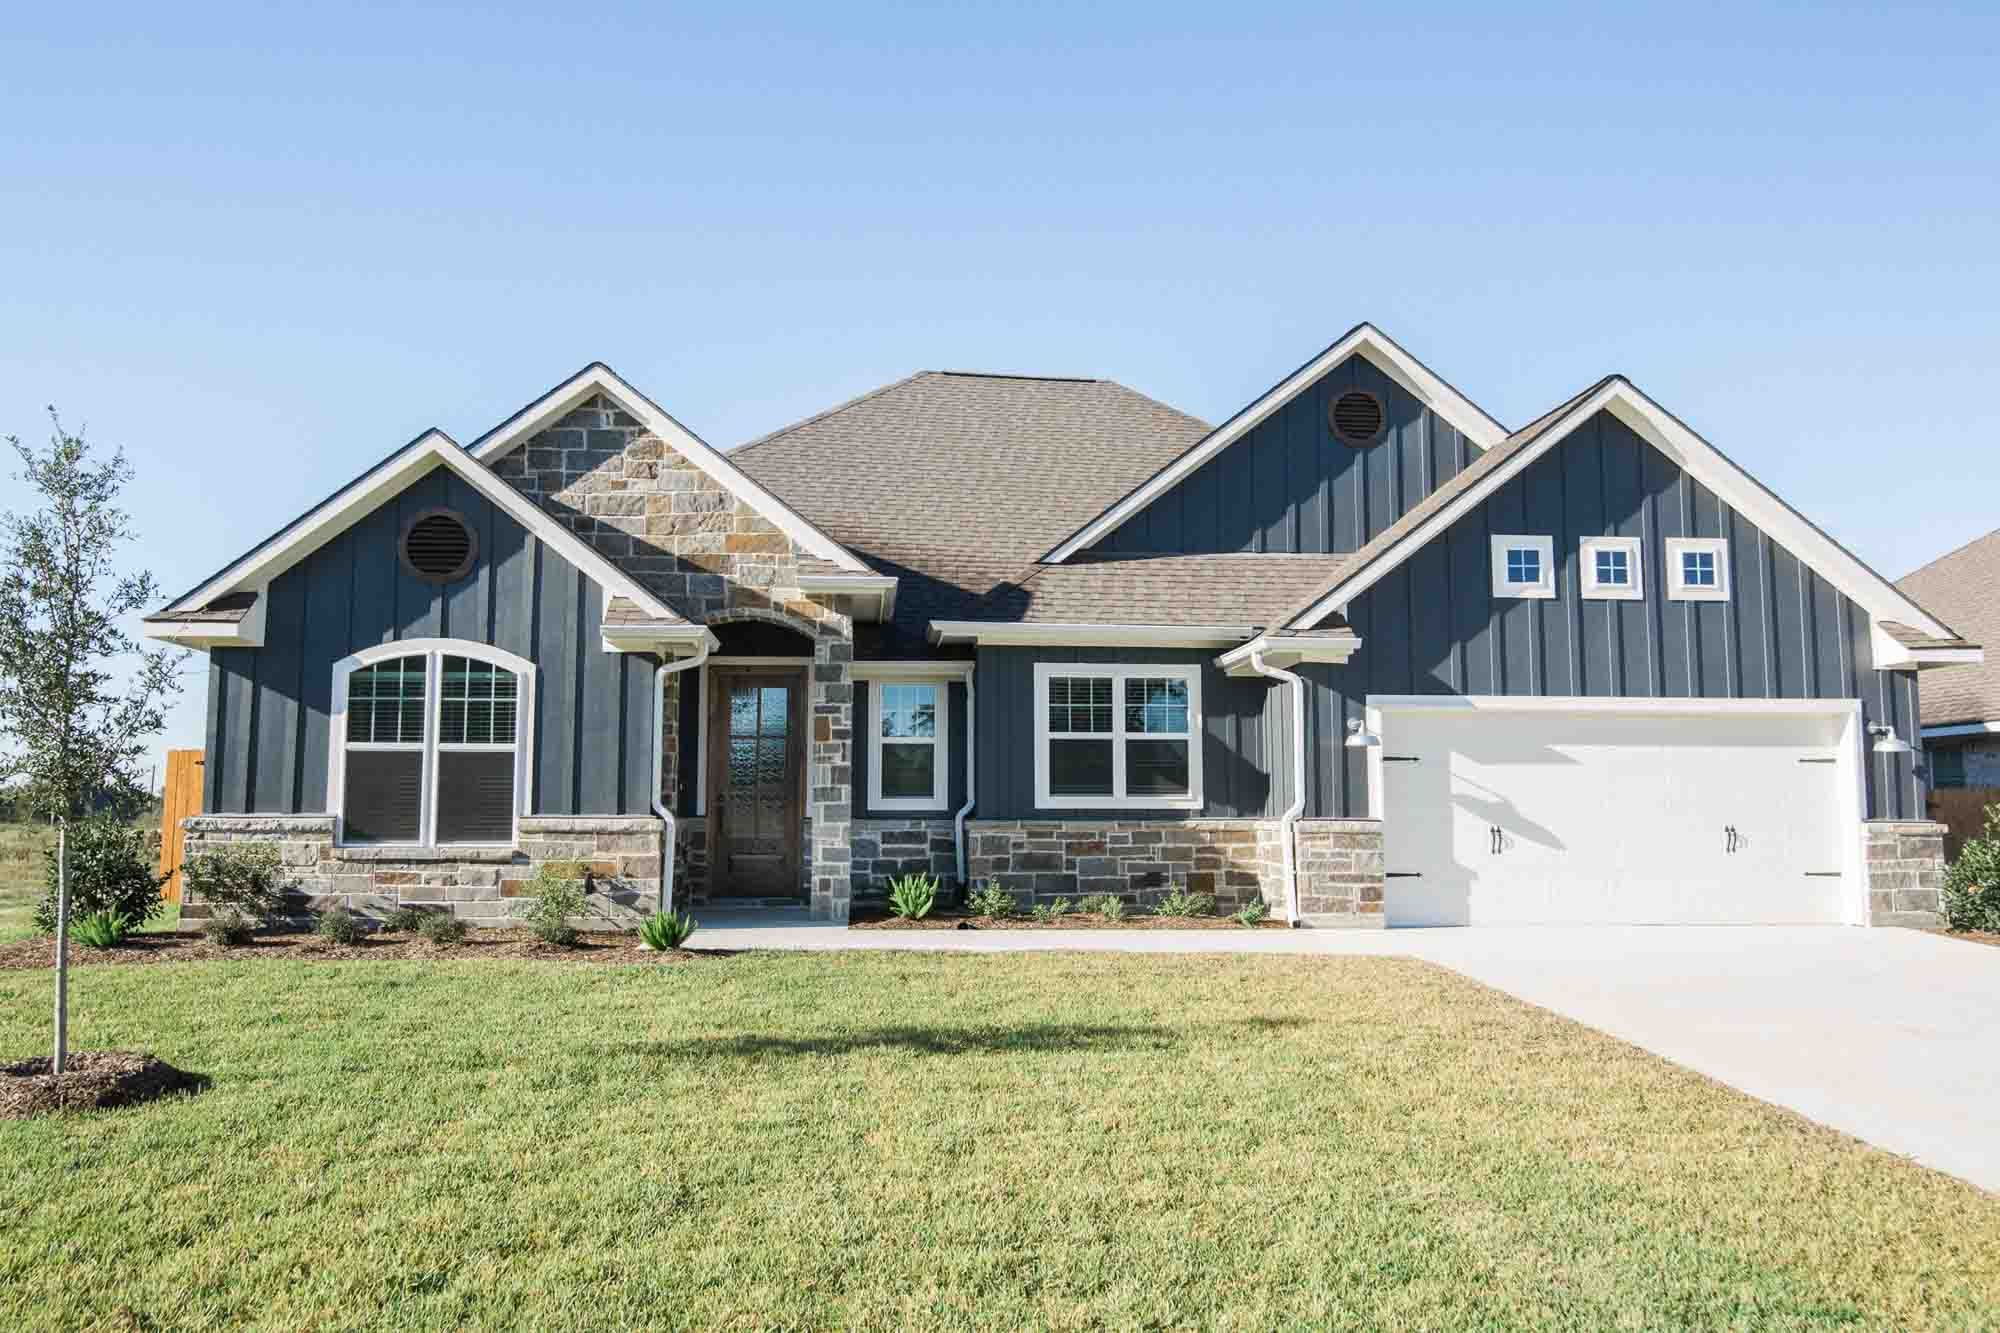 Blue ranch style home inspiration in 2020   Ranch style ... on contemporary house exterior designs, rambler with front of garage, ranch house exterior designs, colonial home exterior designs, custom house exterior designs, split level house exterior designs, ivory home designs,